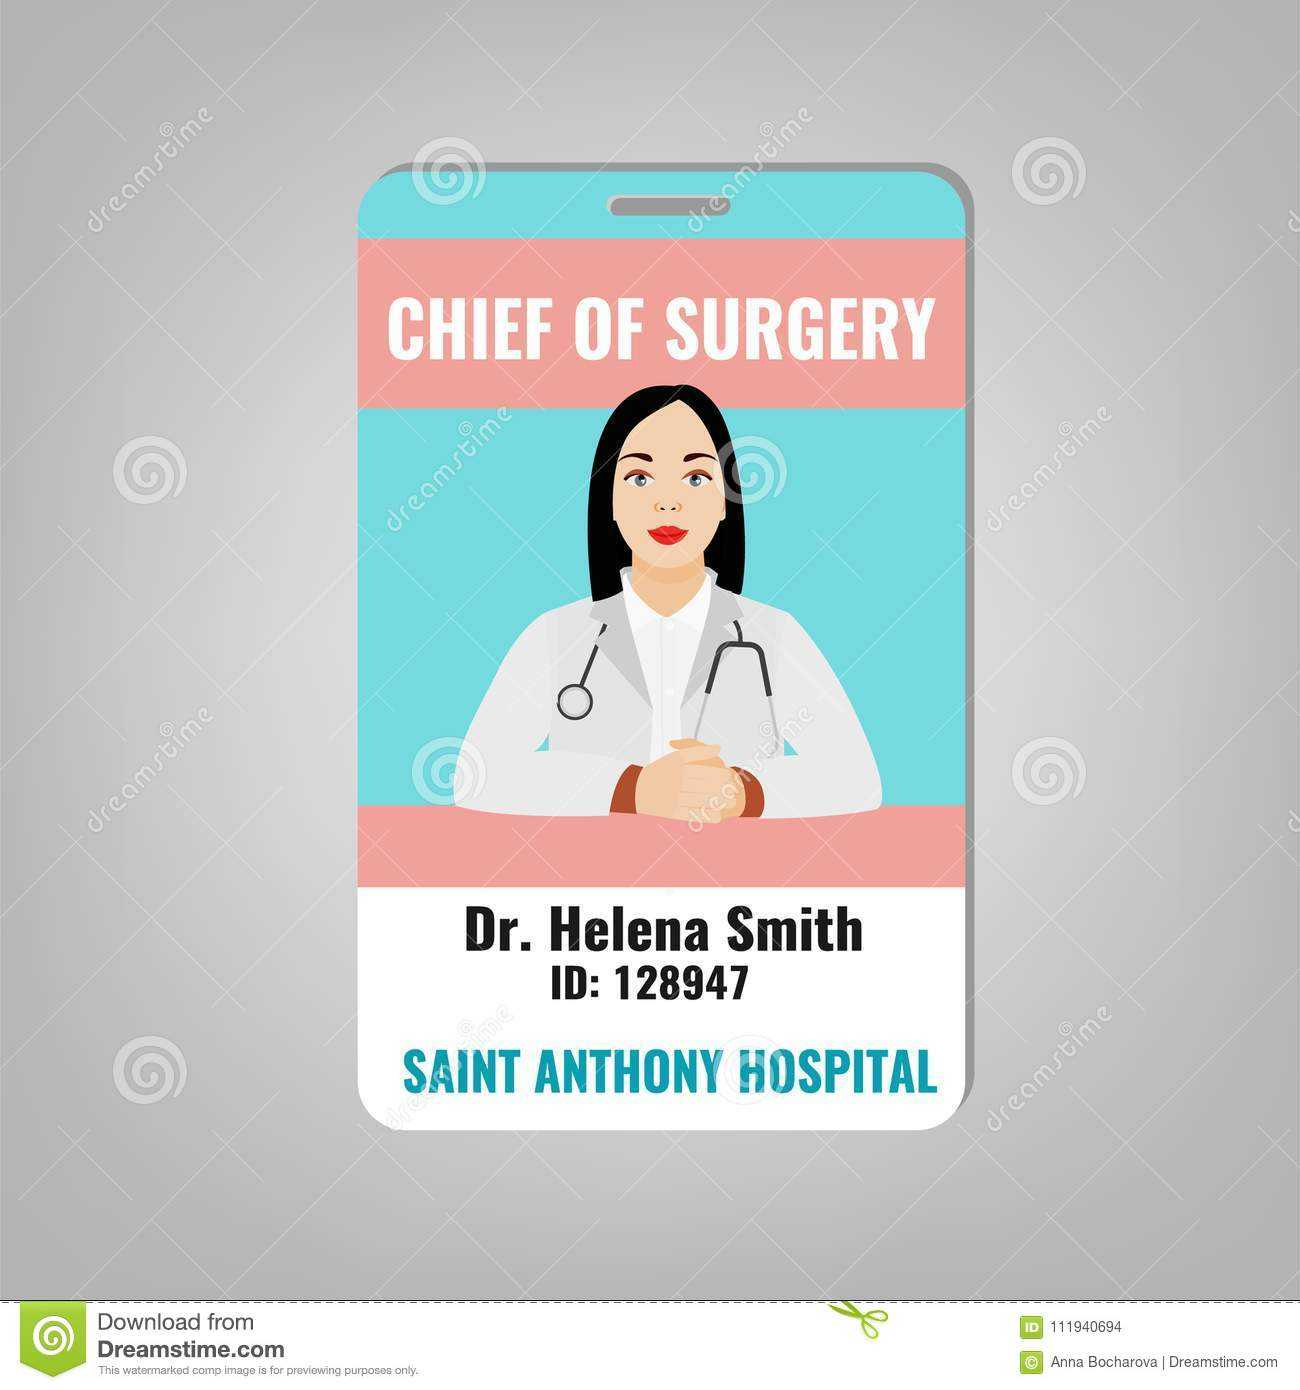 Doctor Id Card Stock Vector. Illustration Of Doctor - 111940694 intended for Doctor Id Card Template